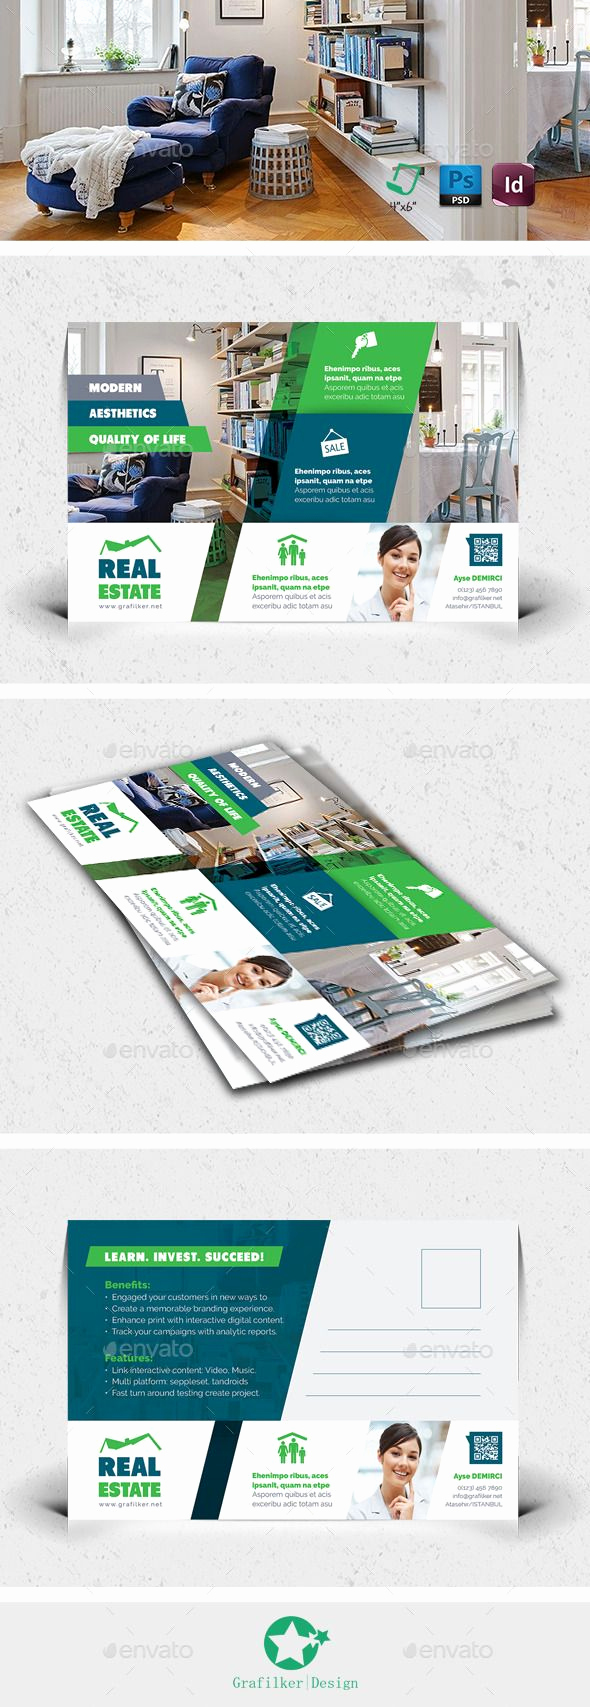 Real Estate Postcard Templates New 1000 Ideas About Real Estate Postcards On Pinterest